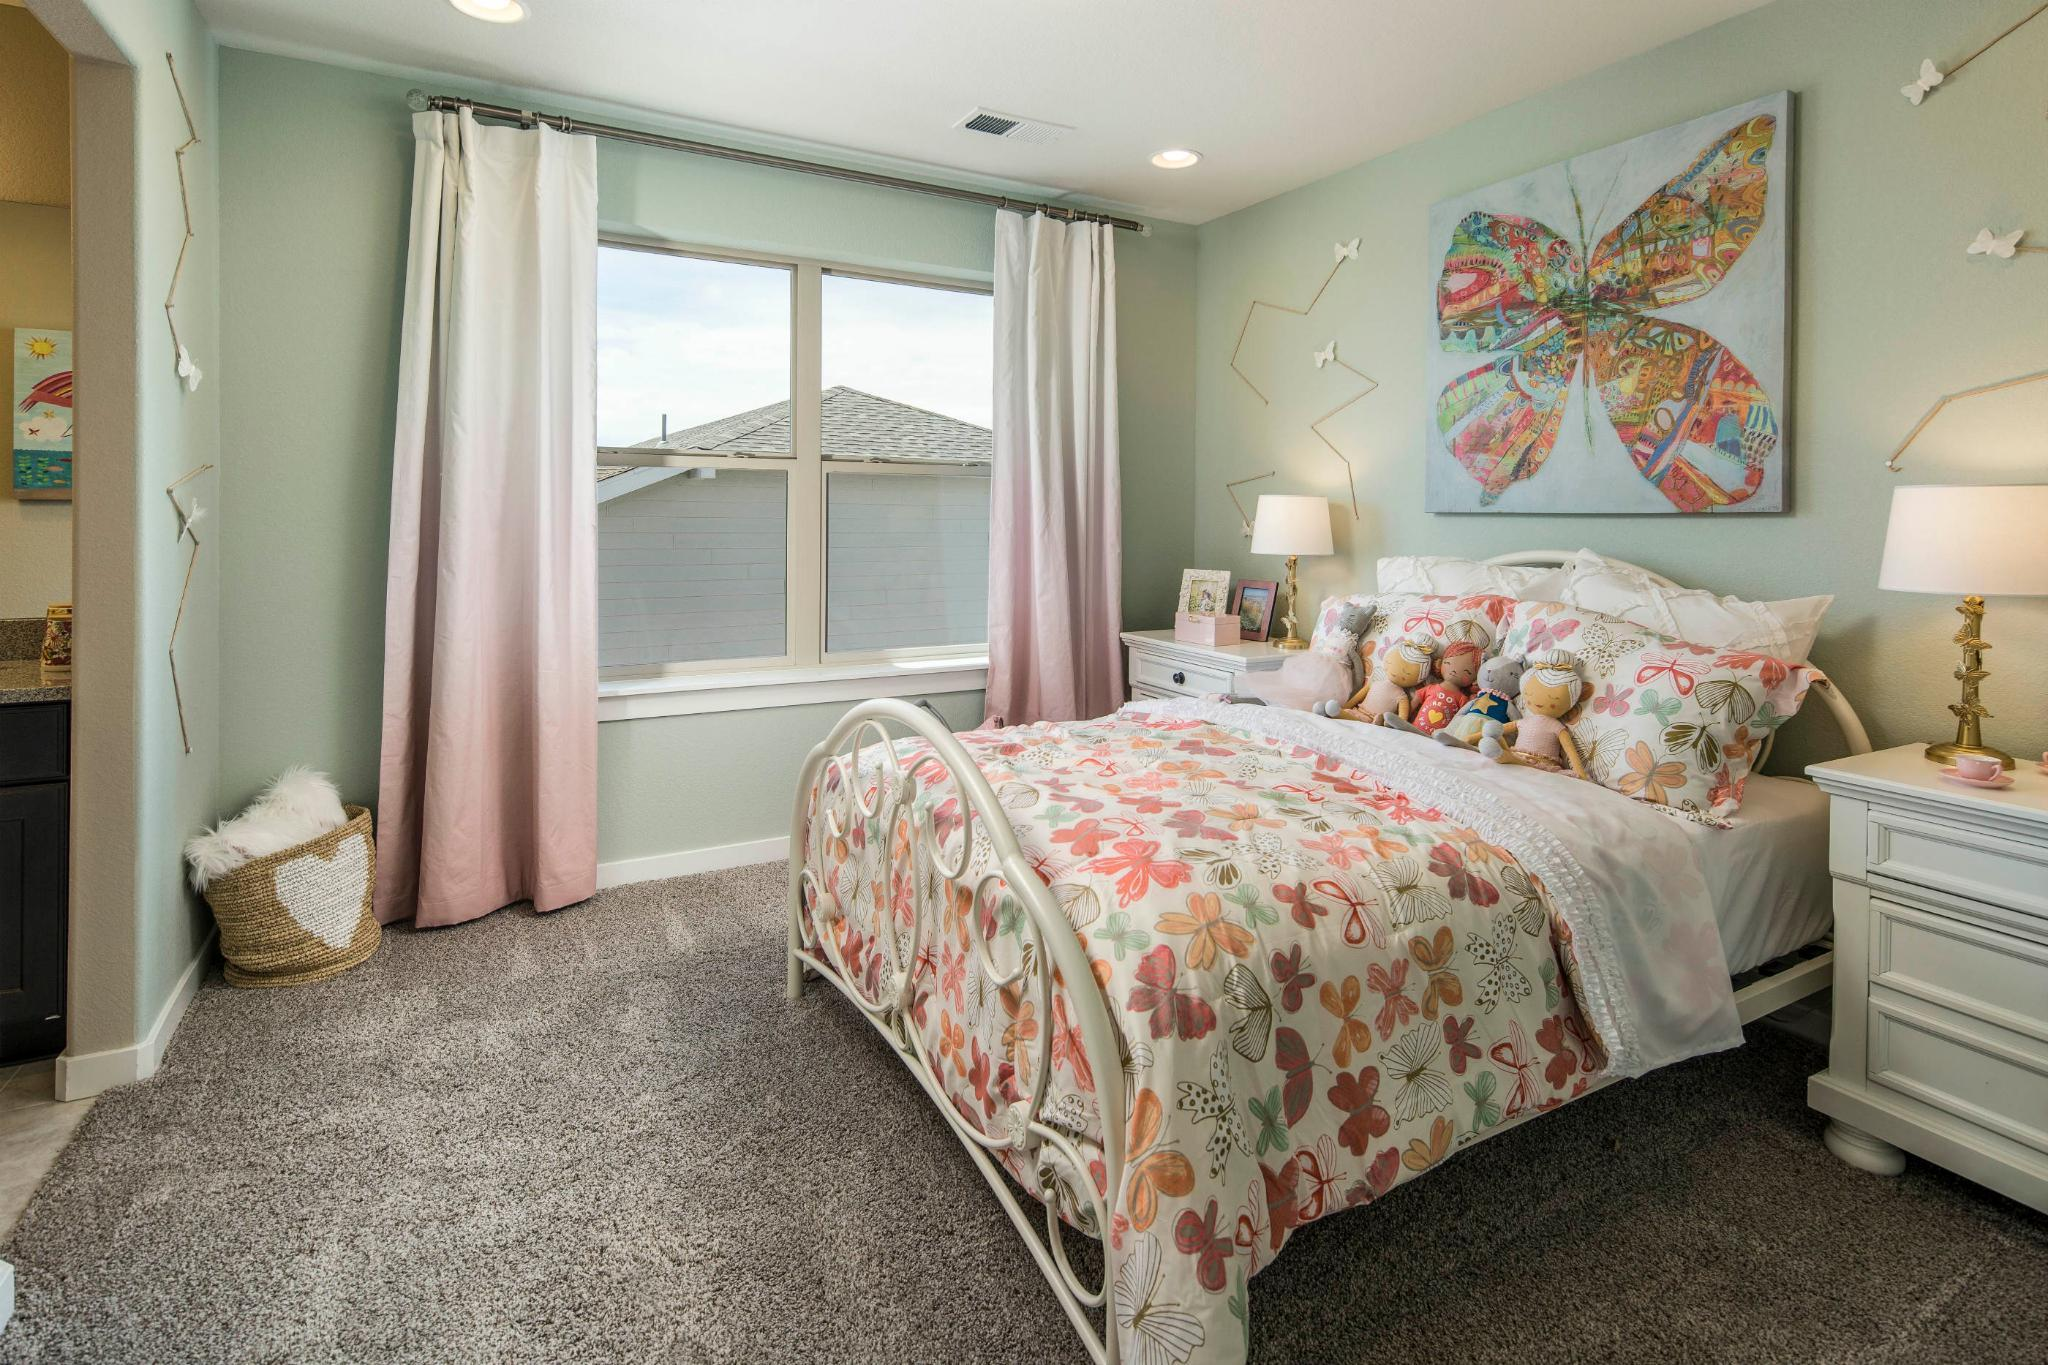 Bedroom featured in the Plan C407 By American Legend Homes in Greeley, CO